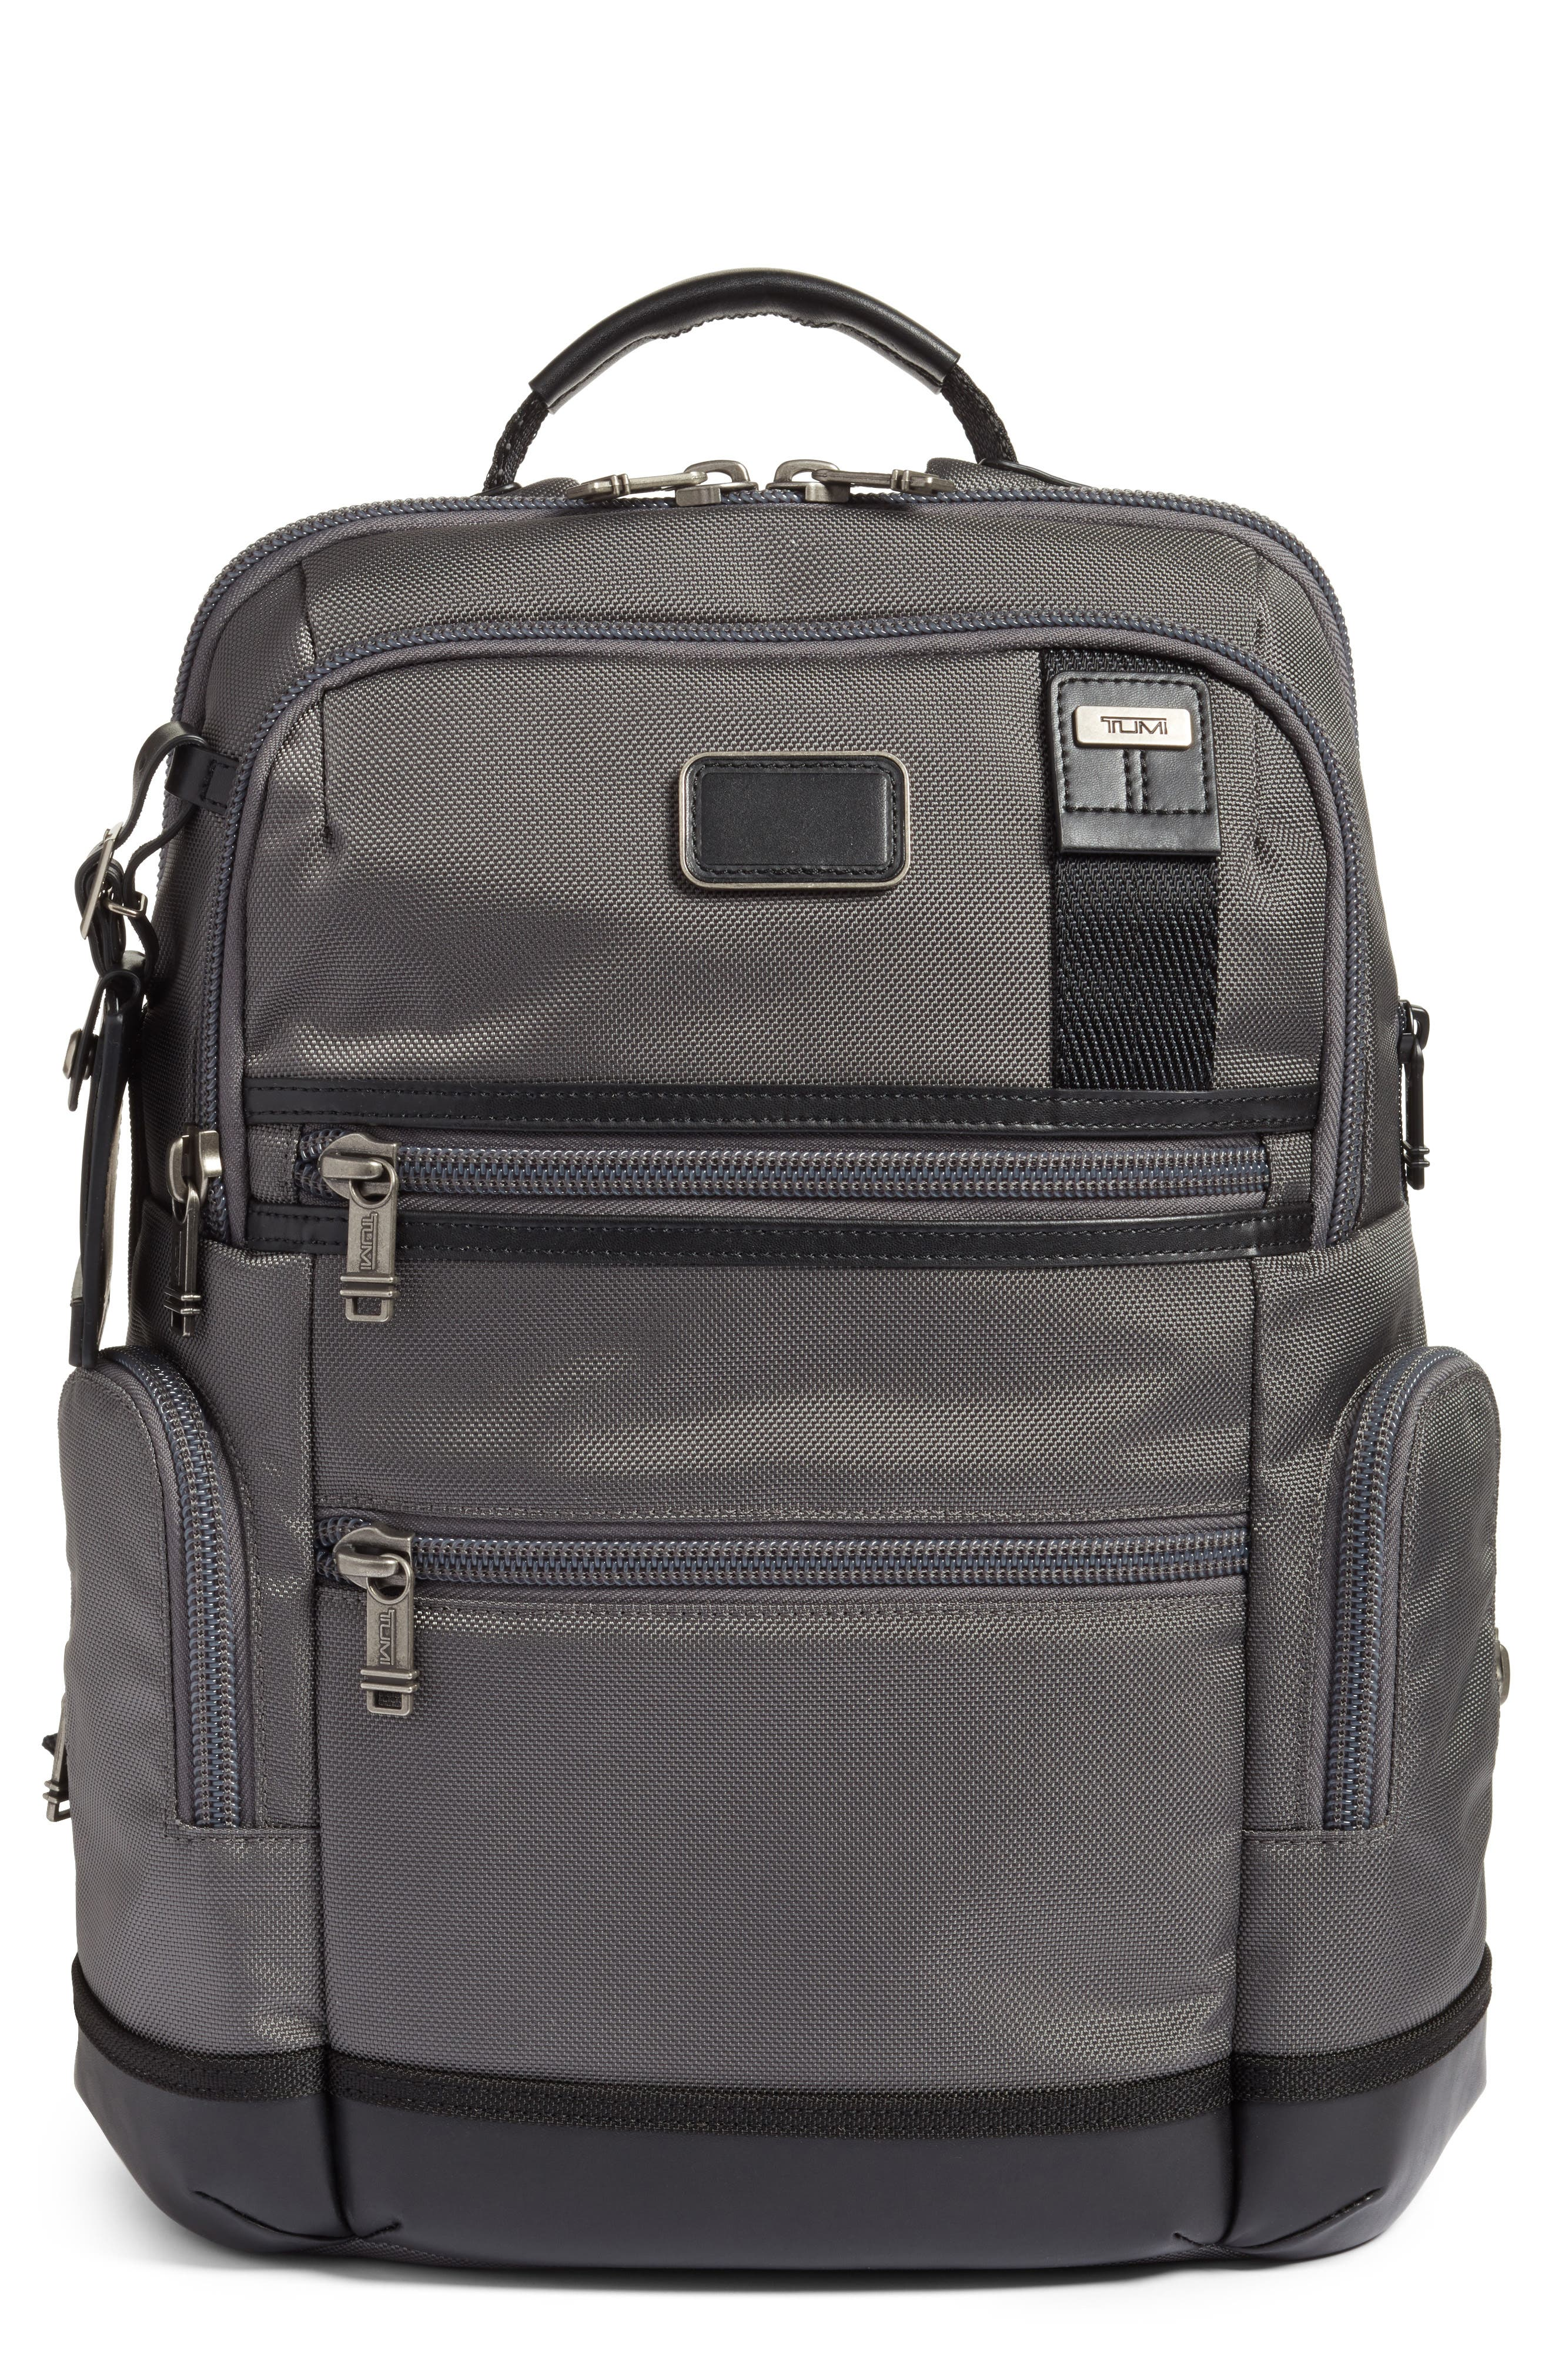 Main Image - Tumi Alpha Bravo - Knox Backpack